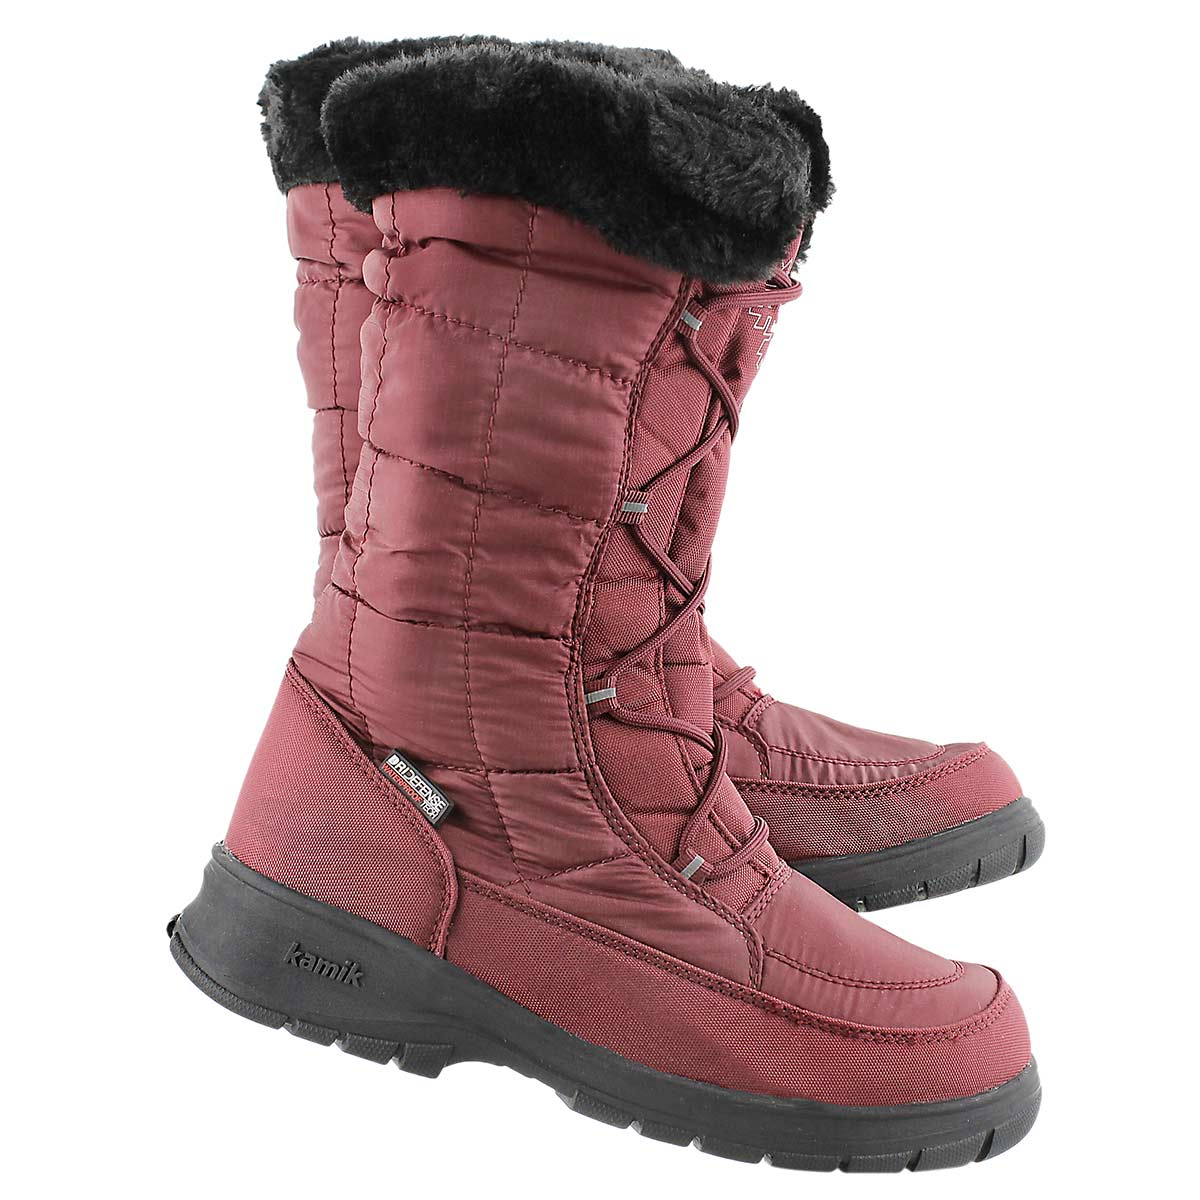 Womens Wide Winter Snow Boots LX4AmaY2